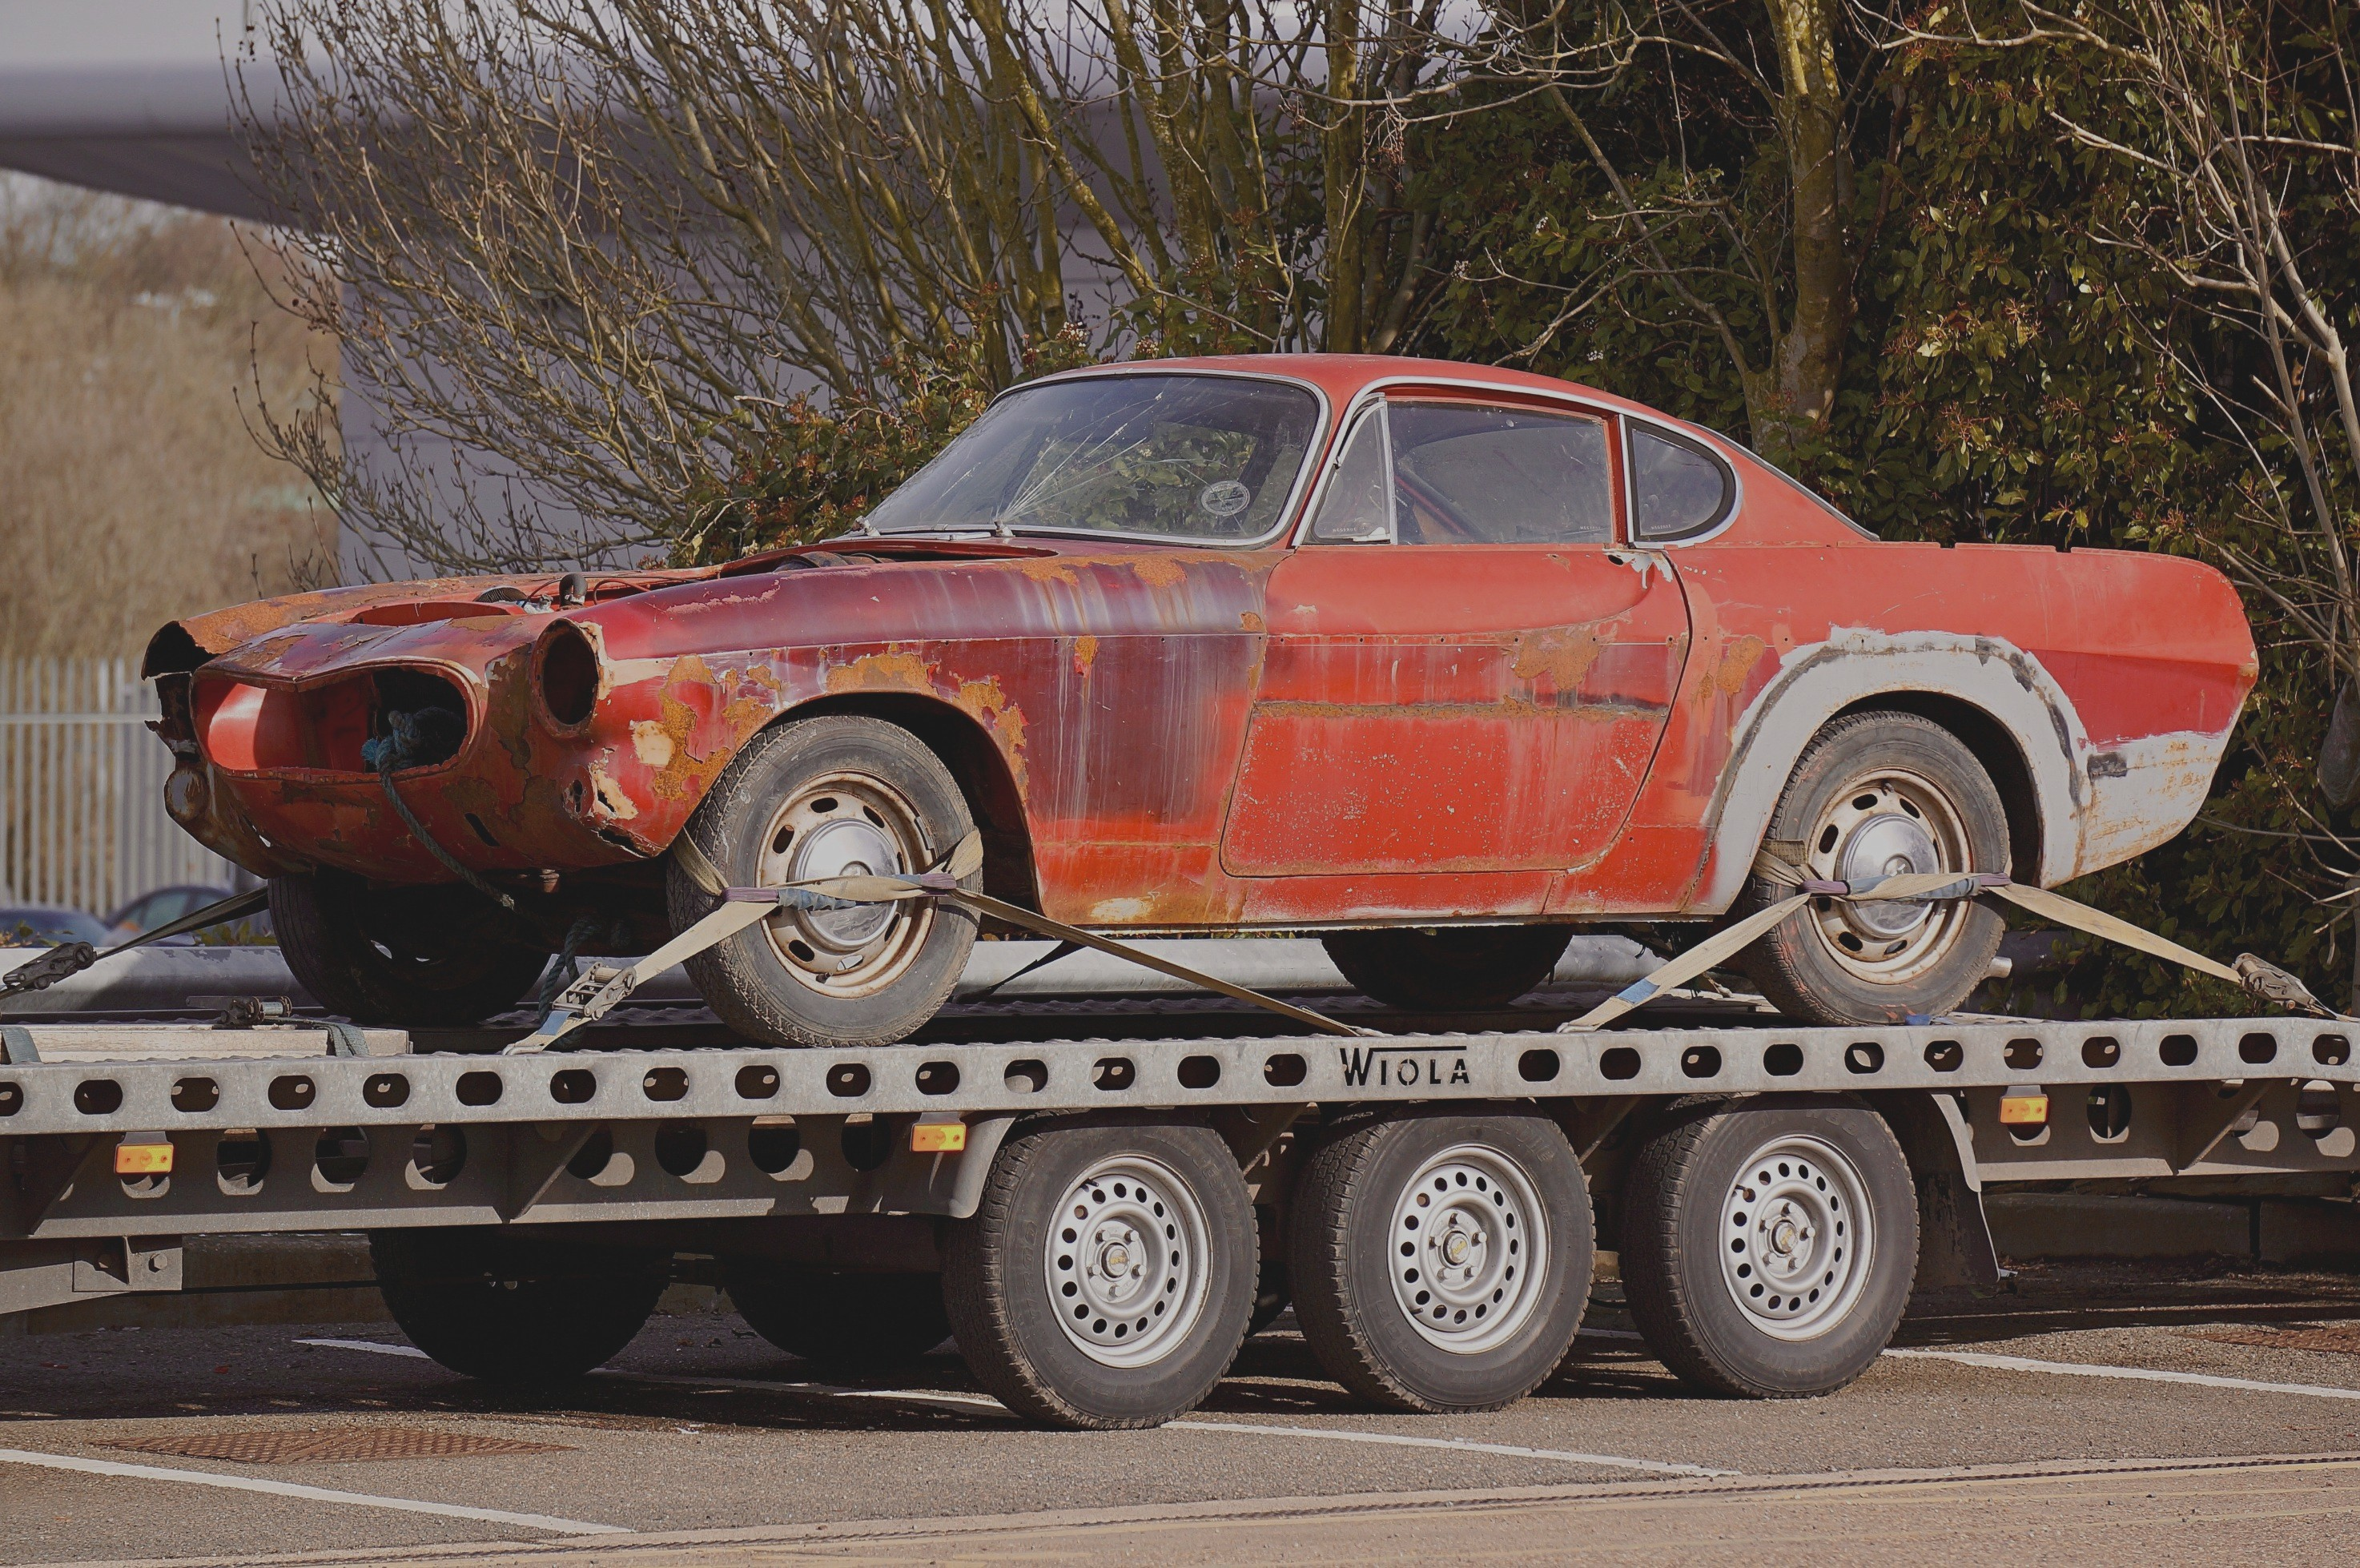 antique muscle car on flatbed tow truck